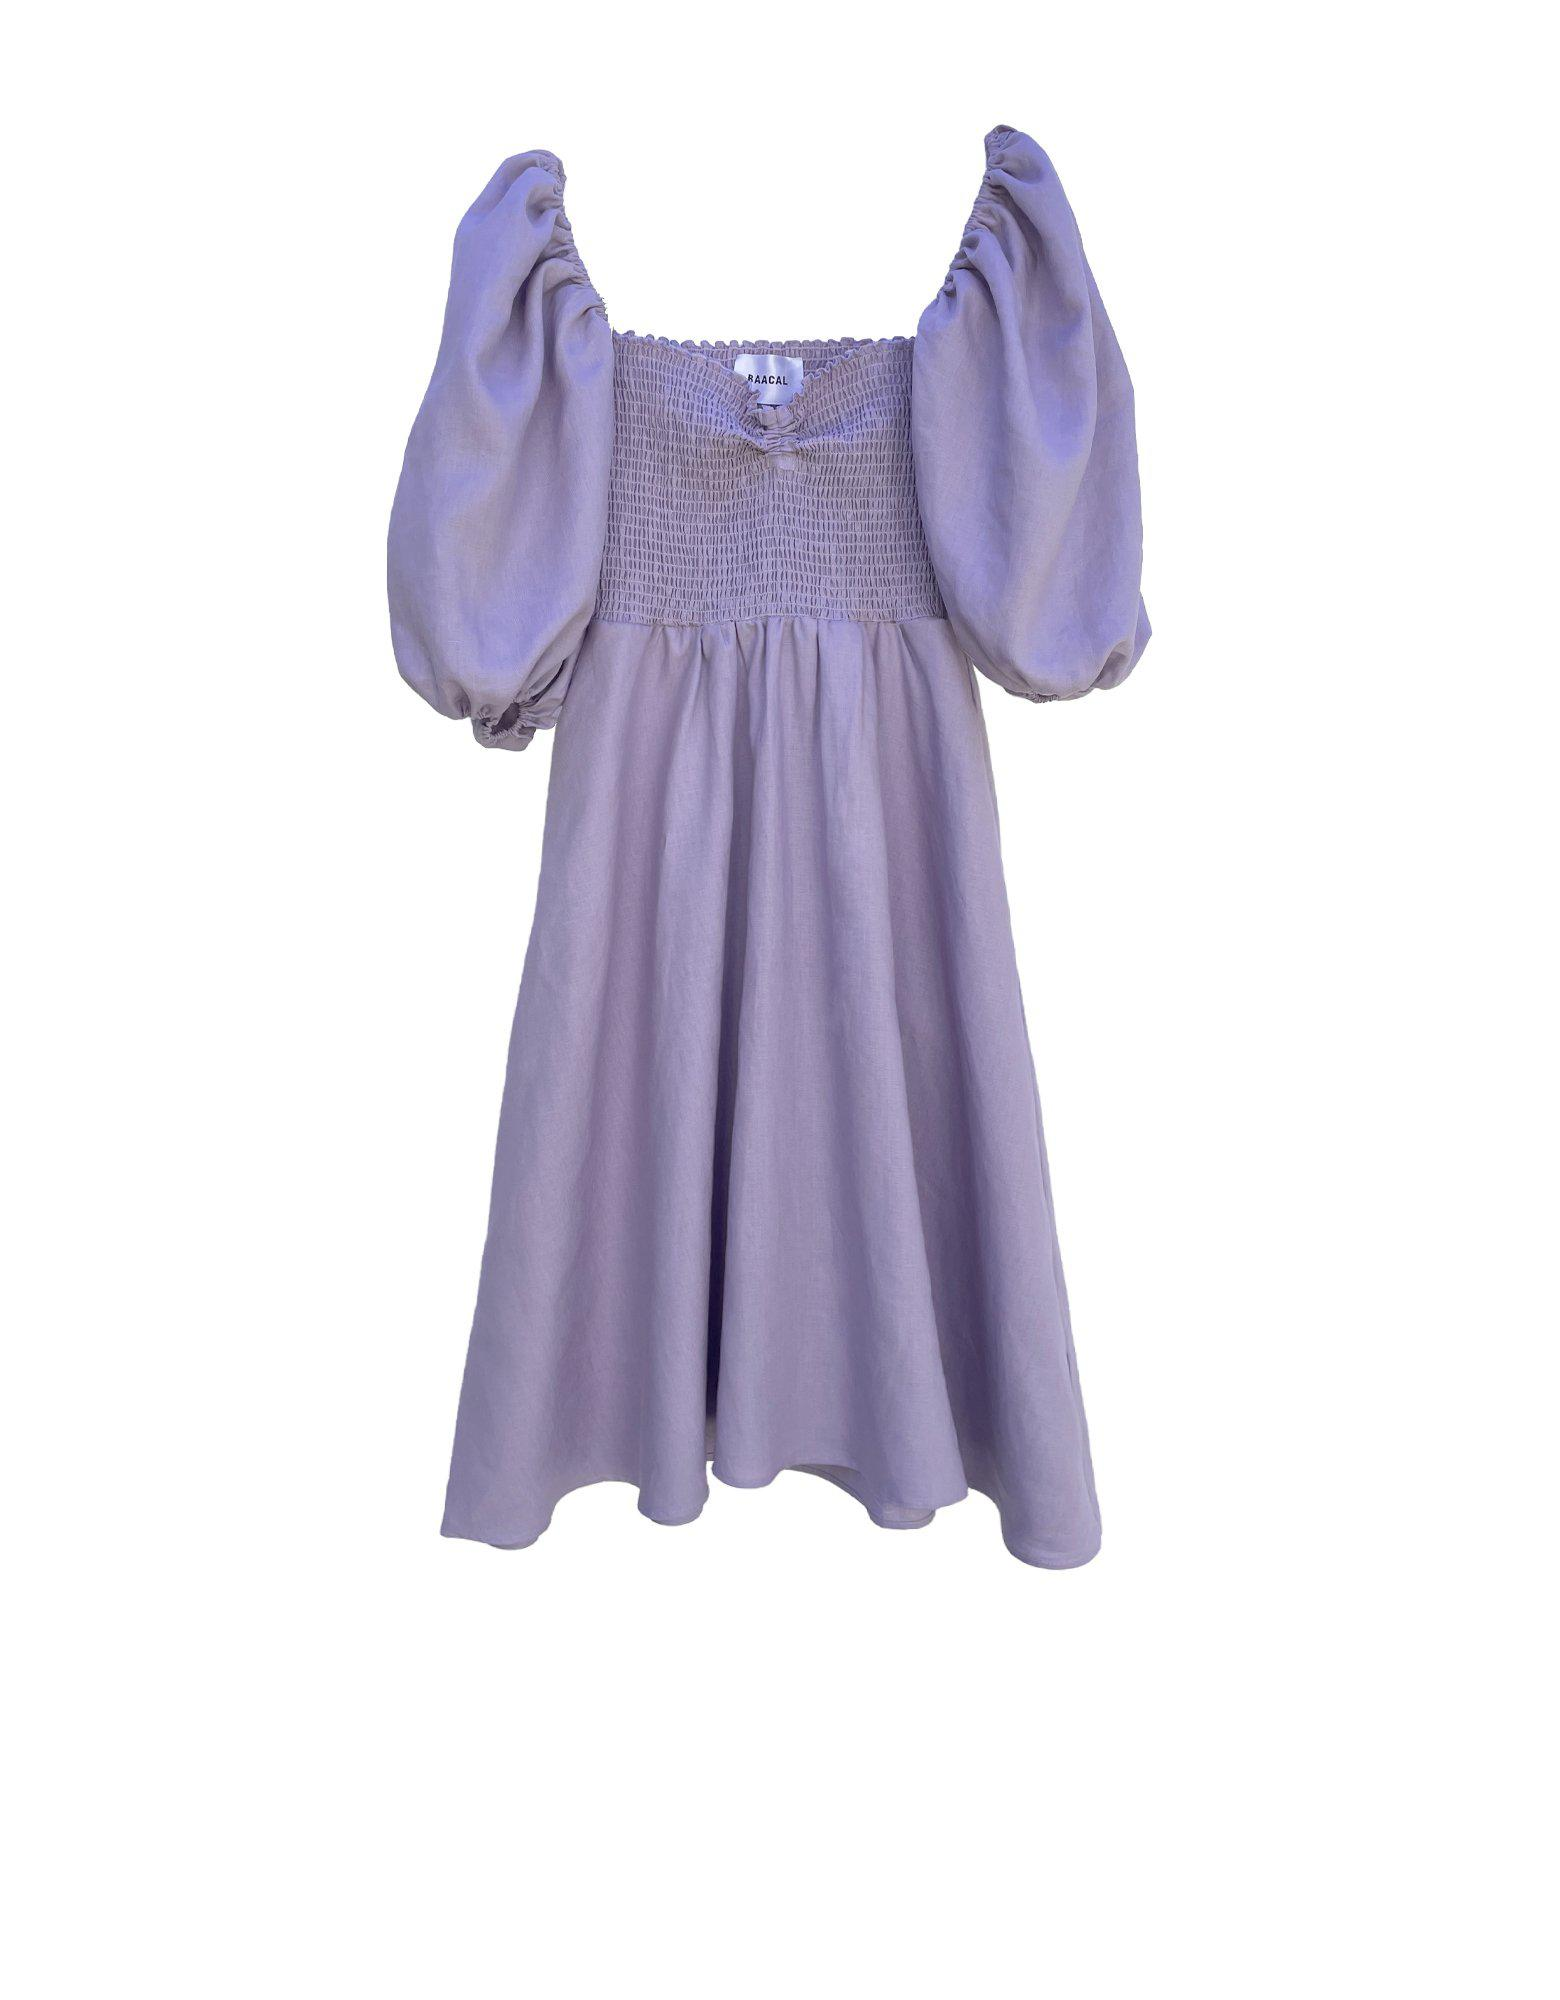 The Colette Dress in Lilac Linen 8